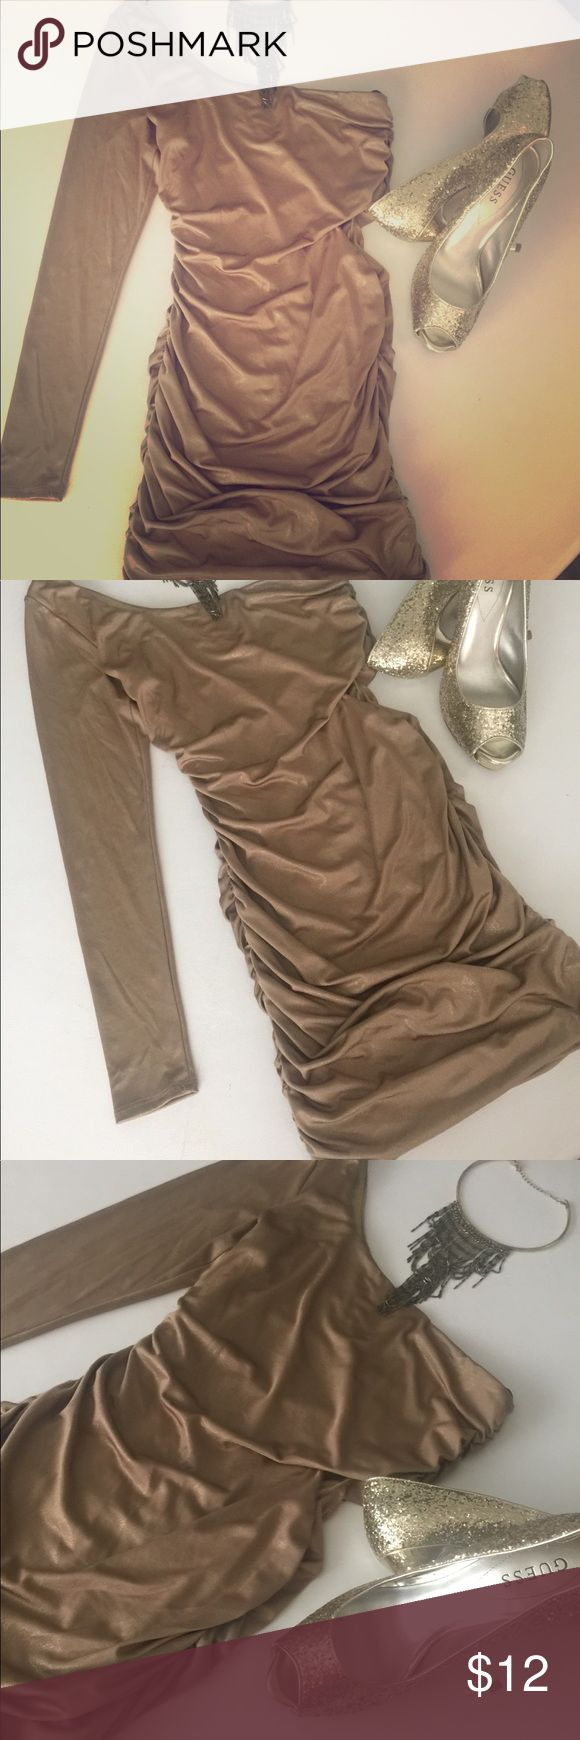 Forever XXI One shoulder gold shiny dress! Size S Super sexy Forever XXI gold shimmer dress! One shoulder and the other sleeve is long sleeve. Dress is form fitting and accents every curve. Pair with a necklace and pumps! Happy New Years!!!! Forever 21 Dresses One Shoulder